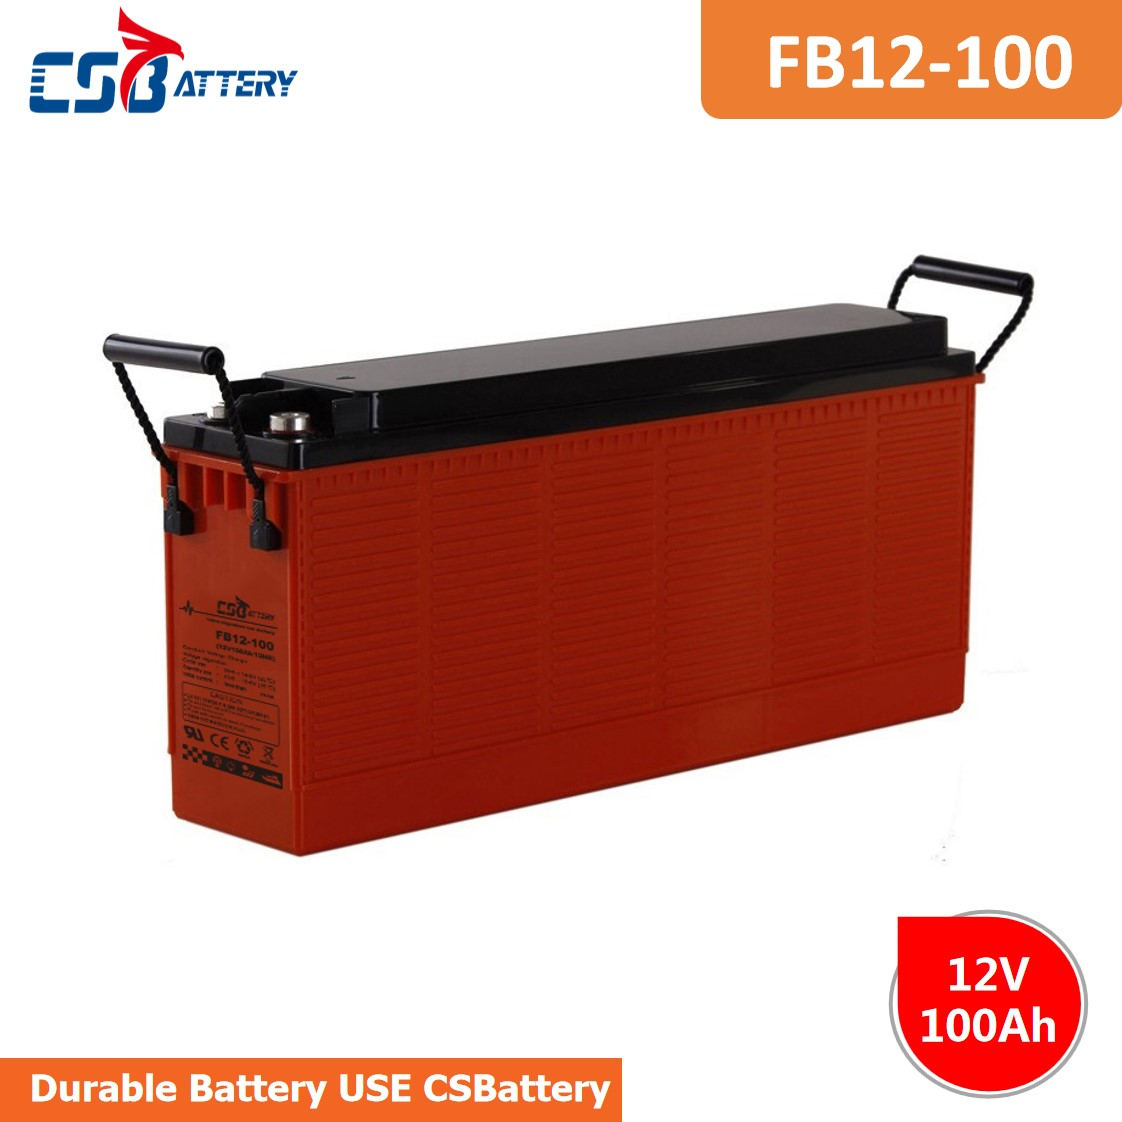 CSBattery 12v100ah backup energy  Lead acid Battery for Golf-car/Buggies/Emergency-lighting/Power-Inverter/forklift